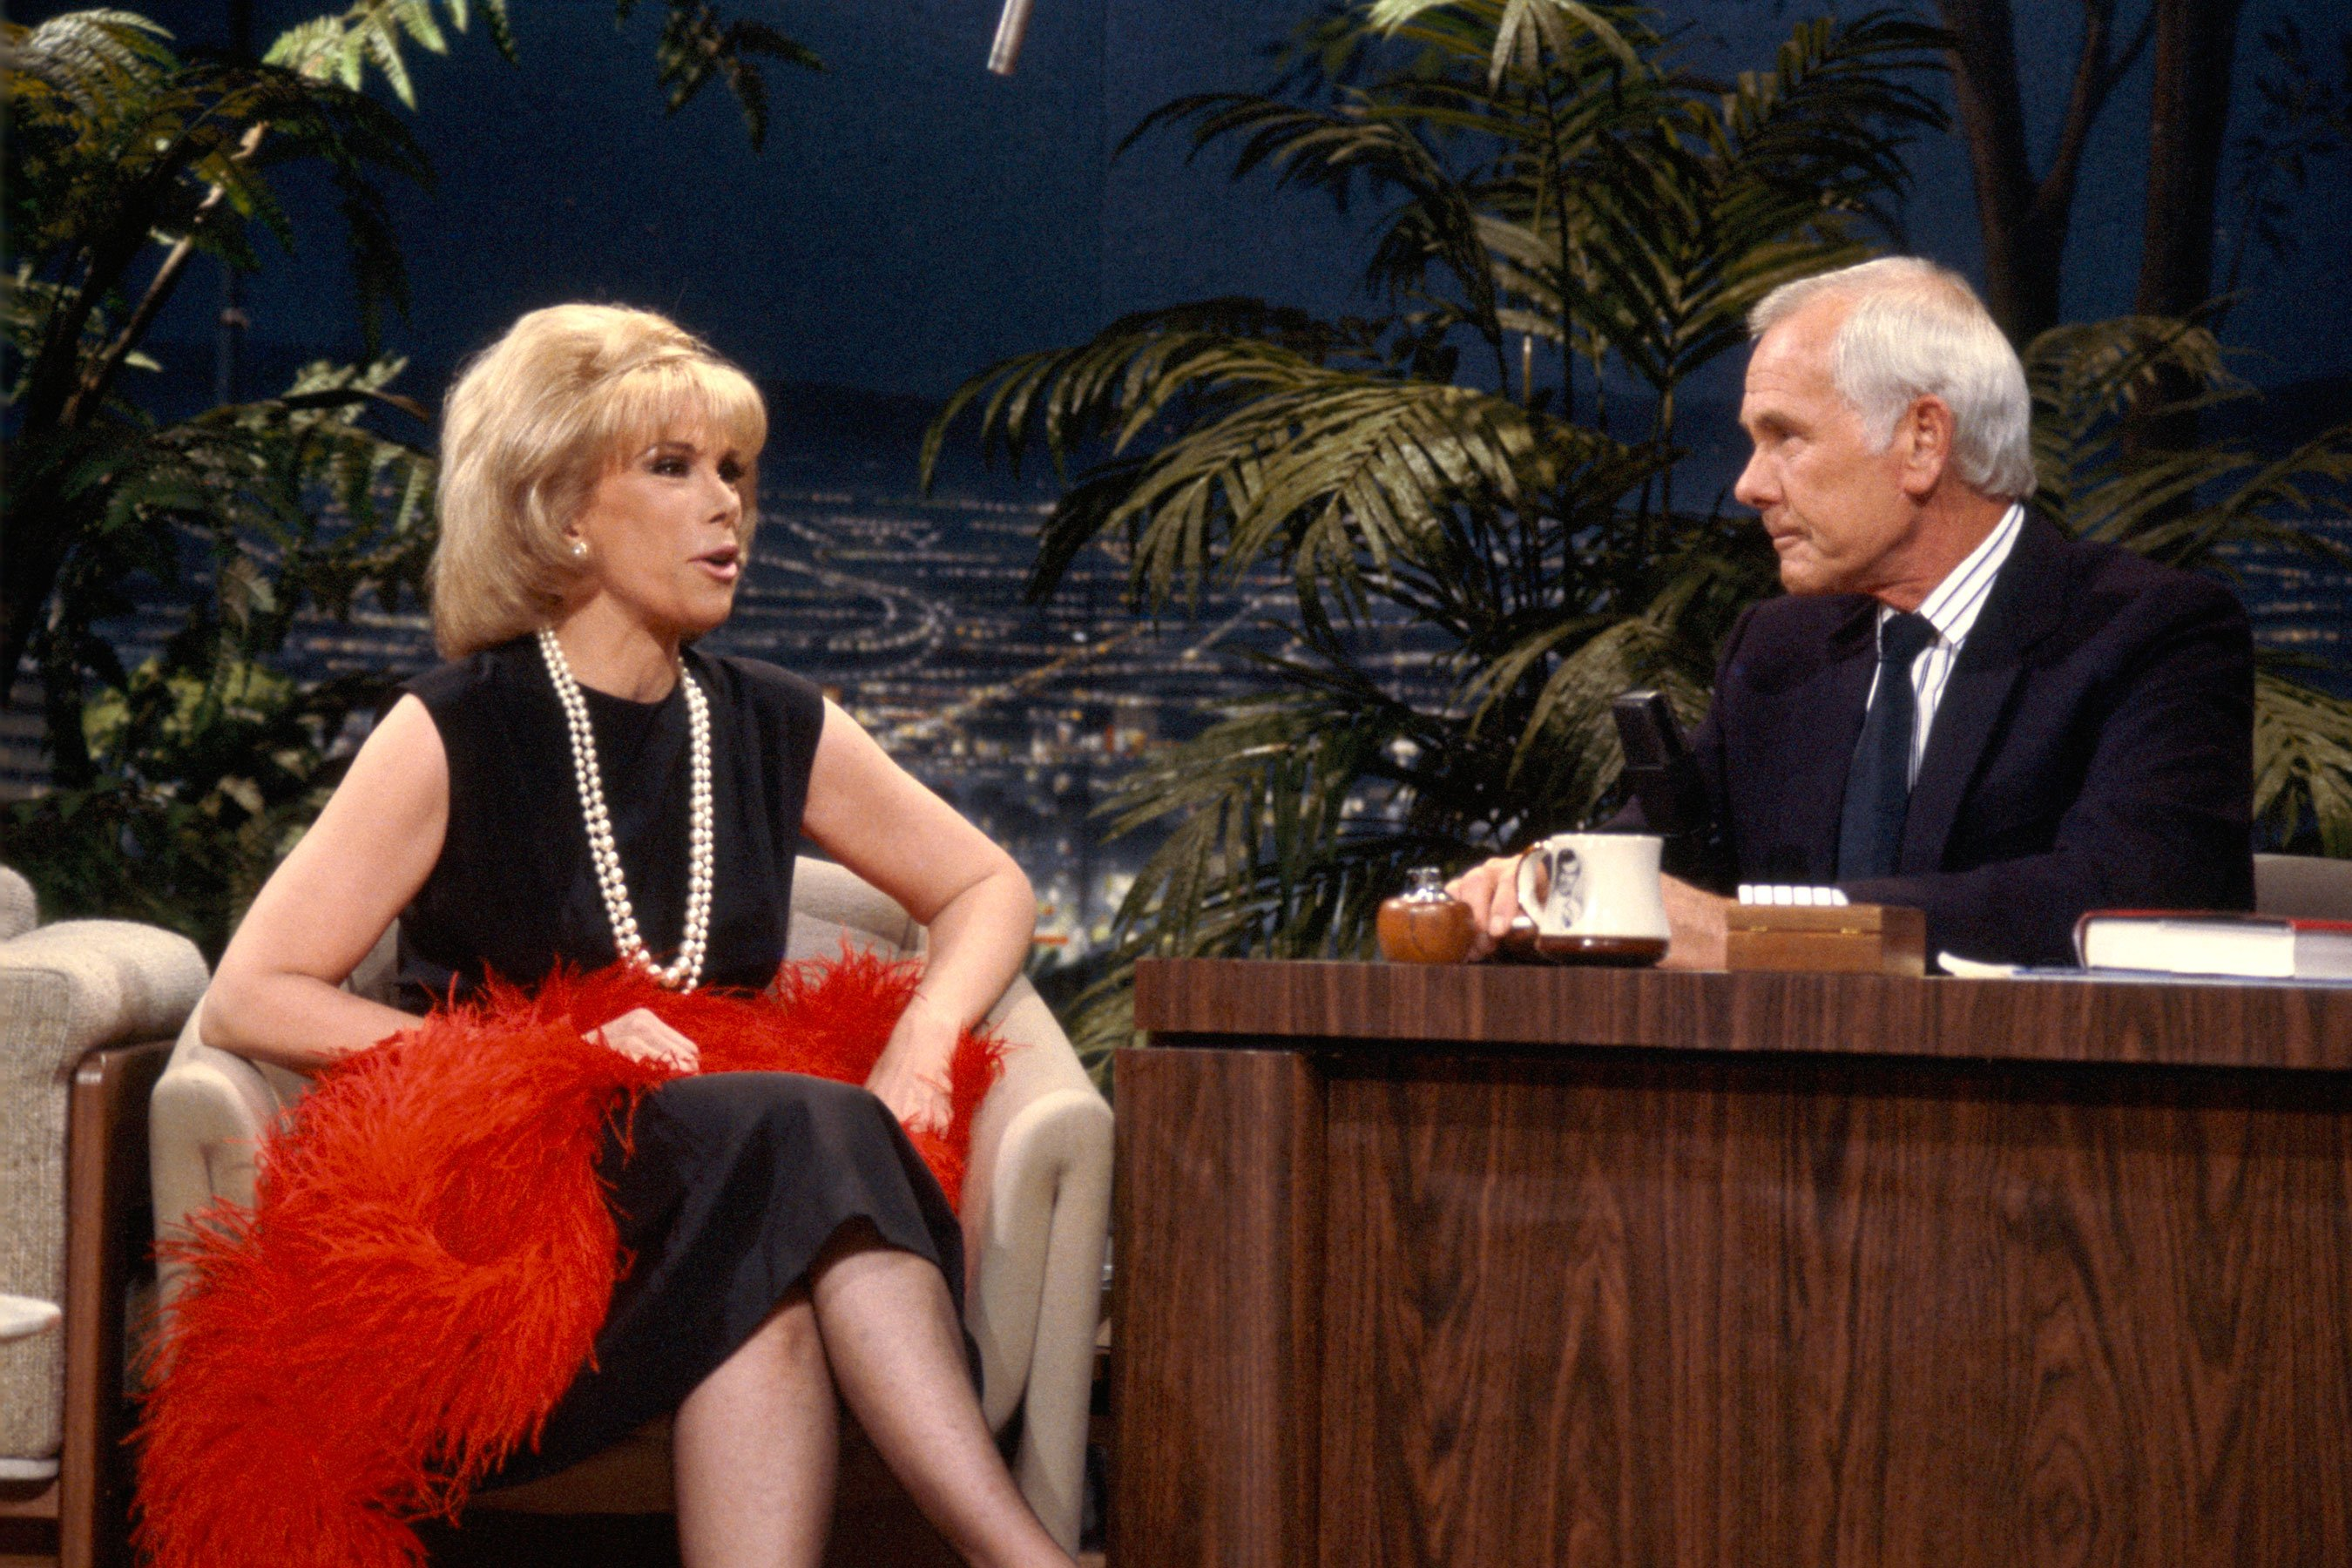 Joan Rivers, Johnny Carson feud addressed in unaired interview